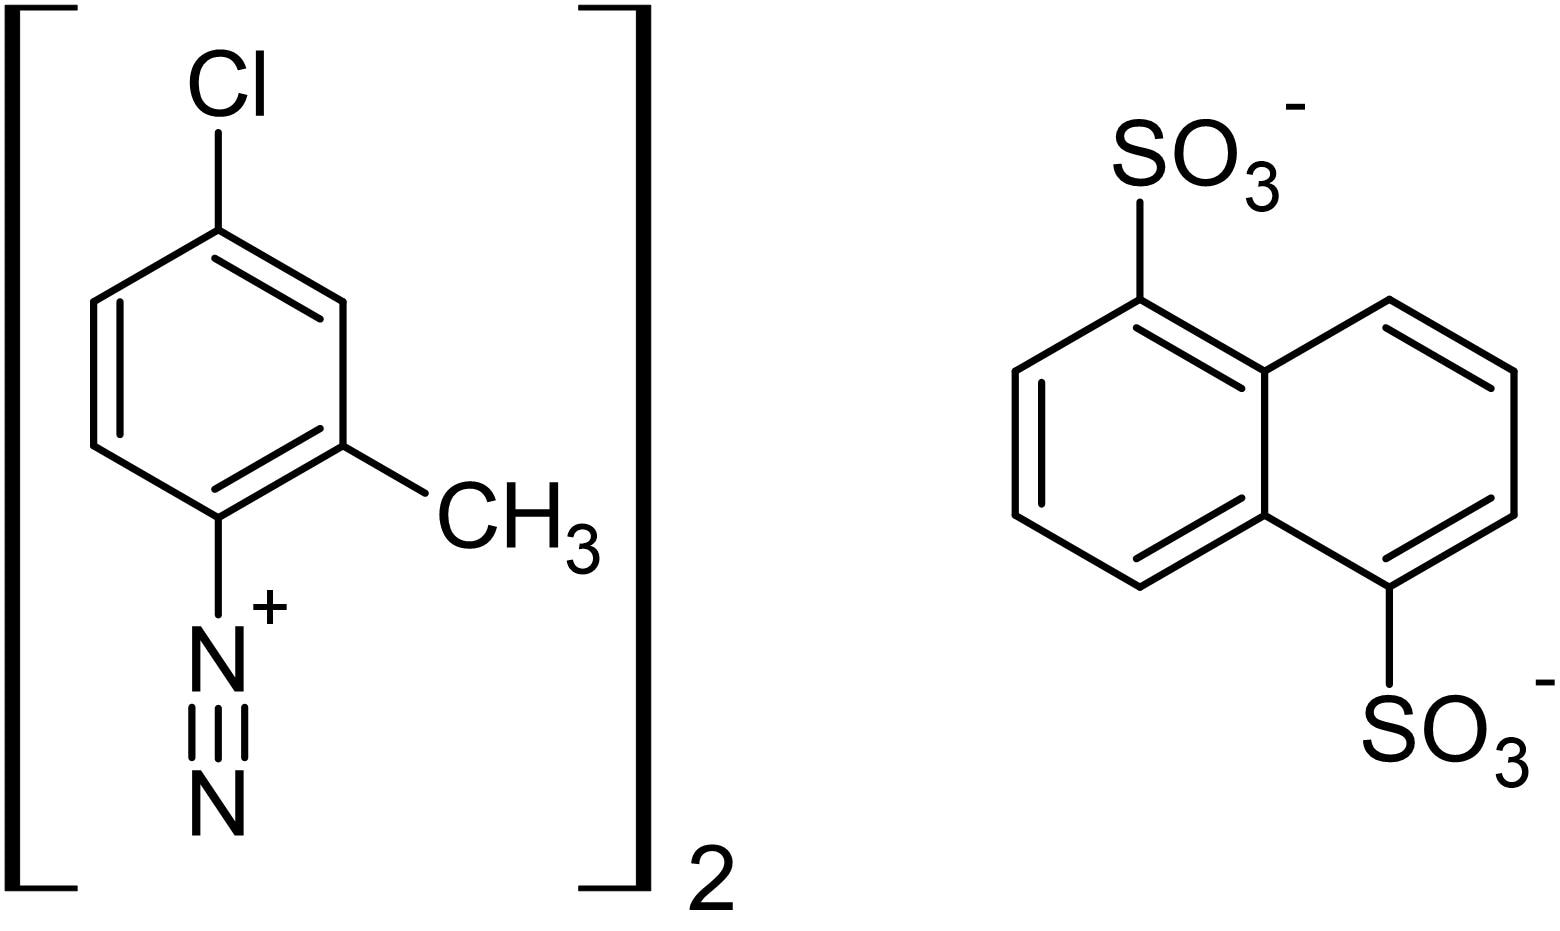 Chemical Structure - Fast red TR 1,5-naphthalenedisulfonate salt, Phosphatase detection reagent (ab146351)